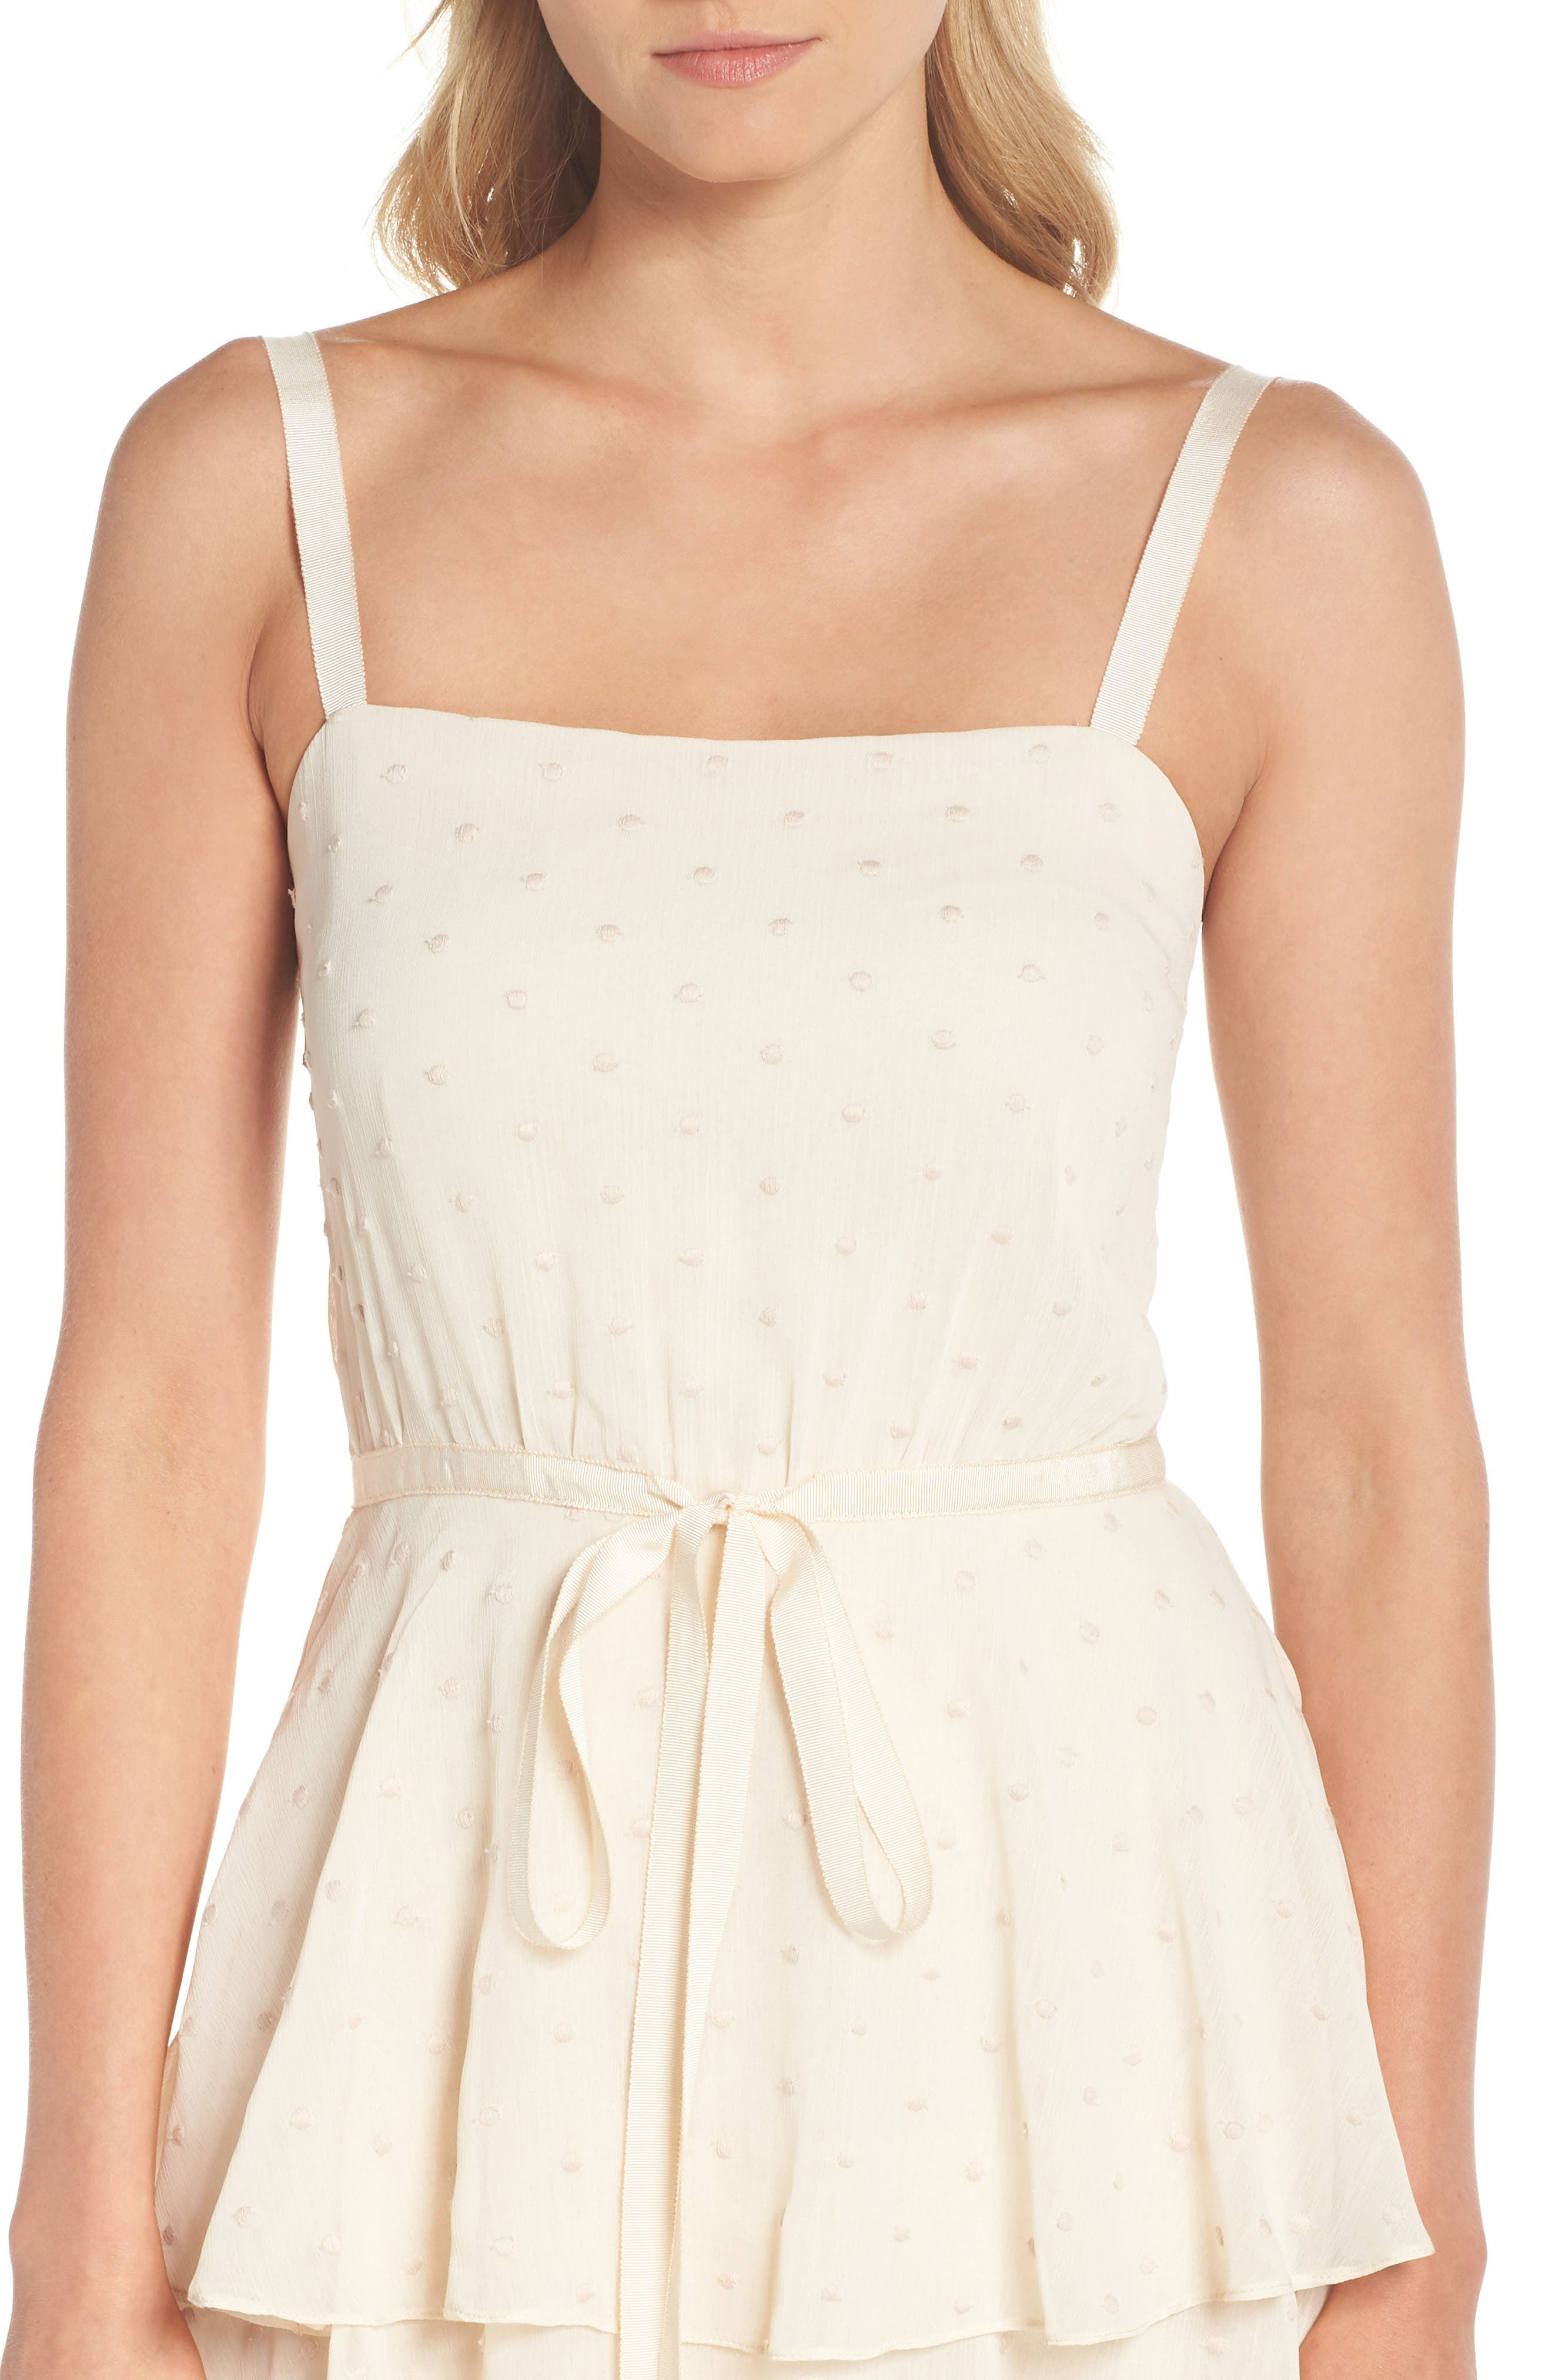 Florence Chiffon Embroidered Tiered A-Line Dress,                             Alternate thumbnail 4, color,                             255